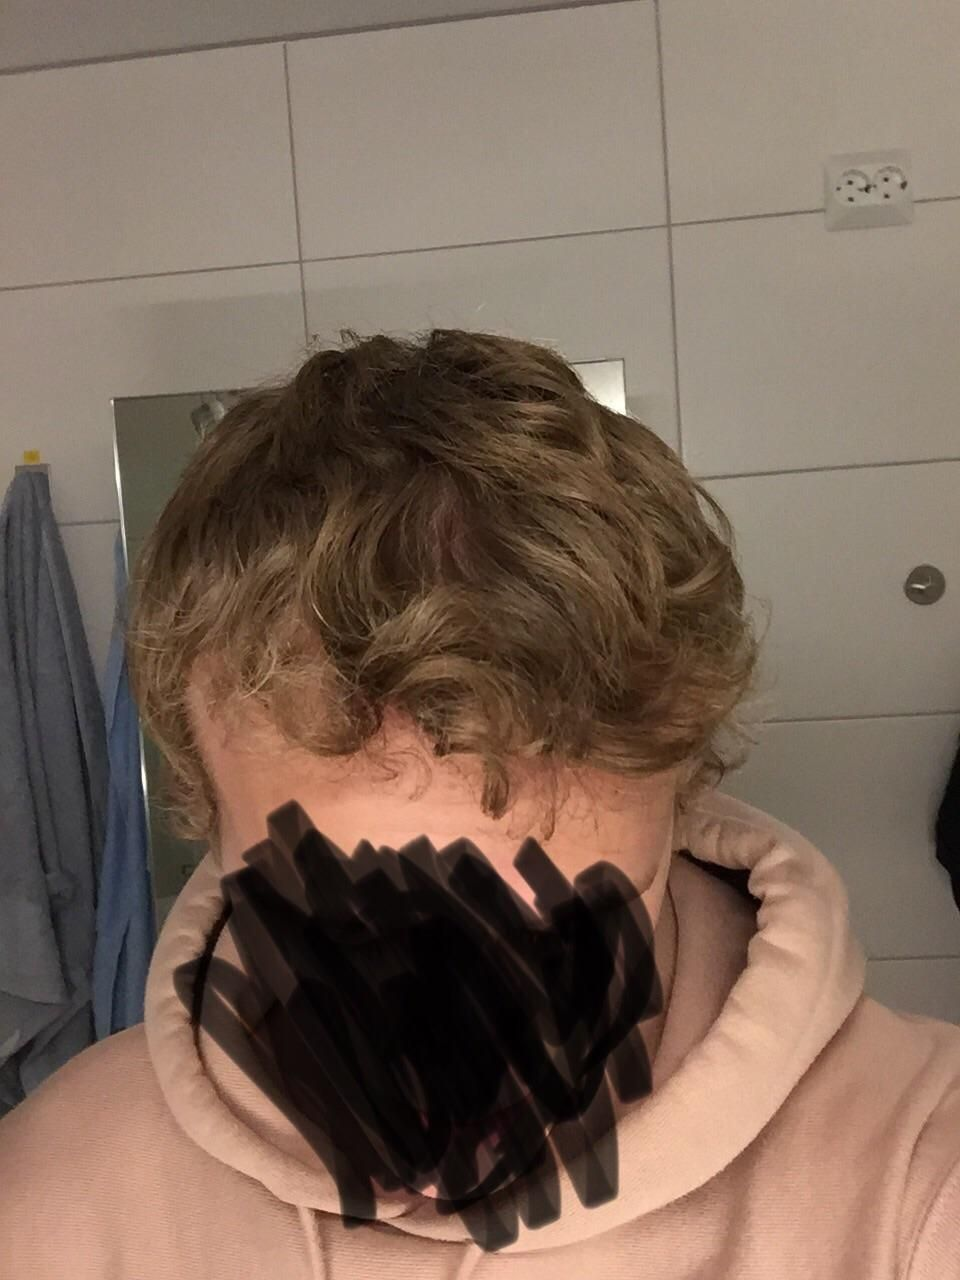 I have somewhat curly hair and have always styled it in a wave with